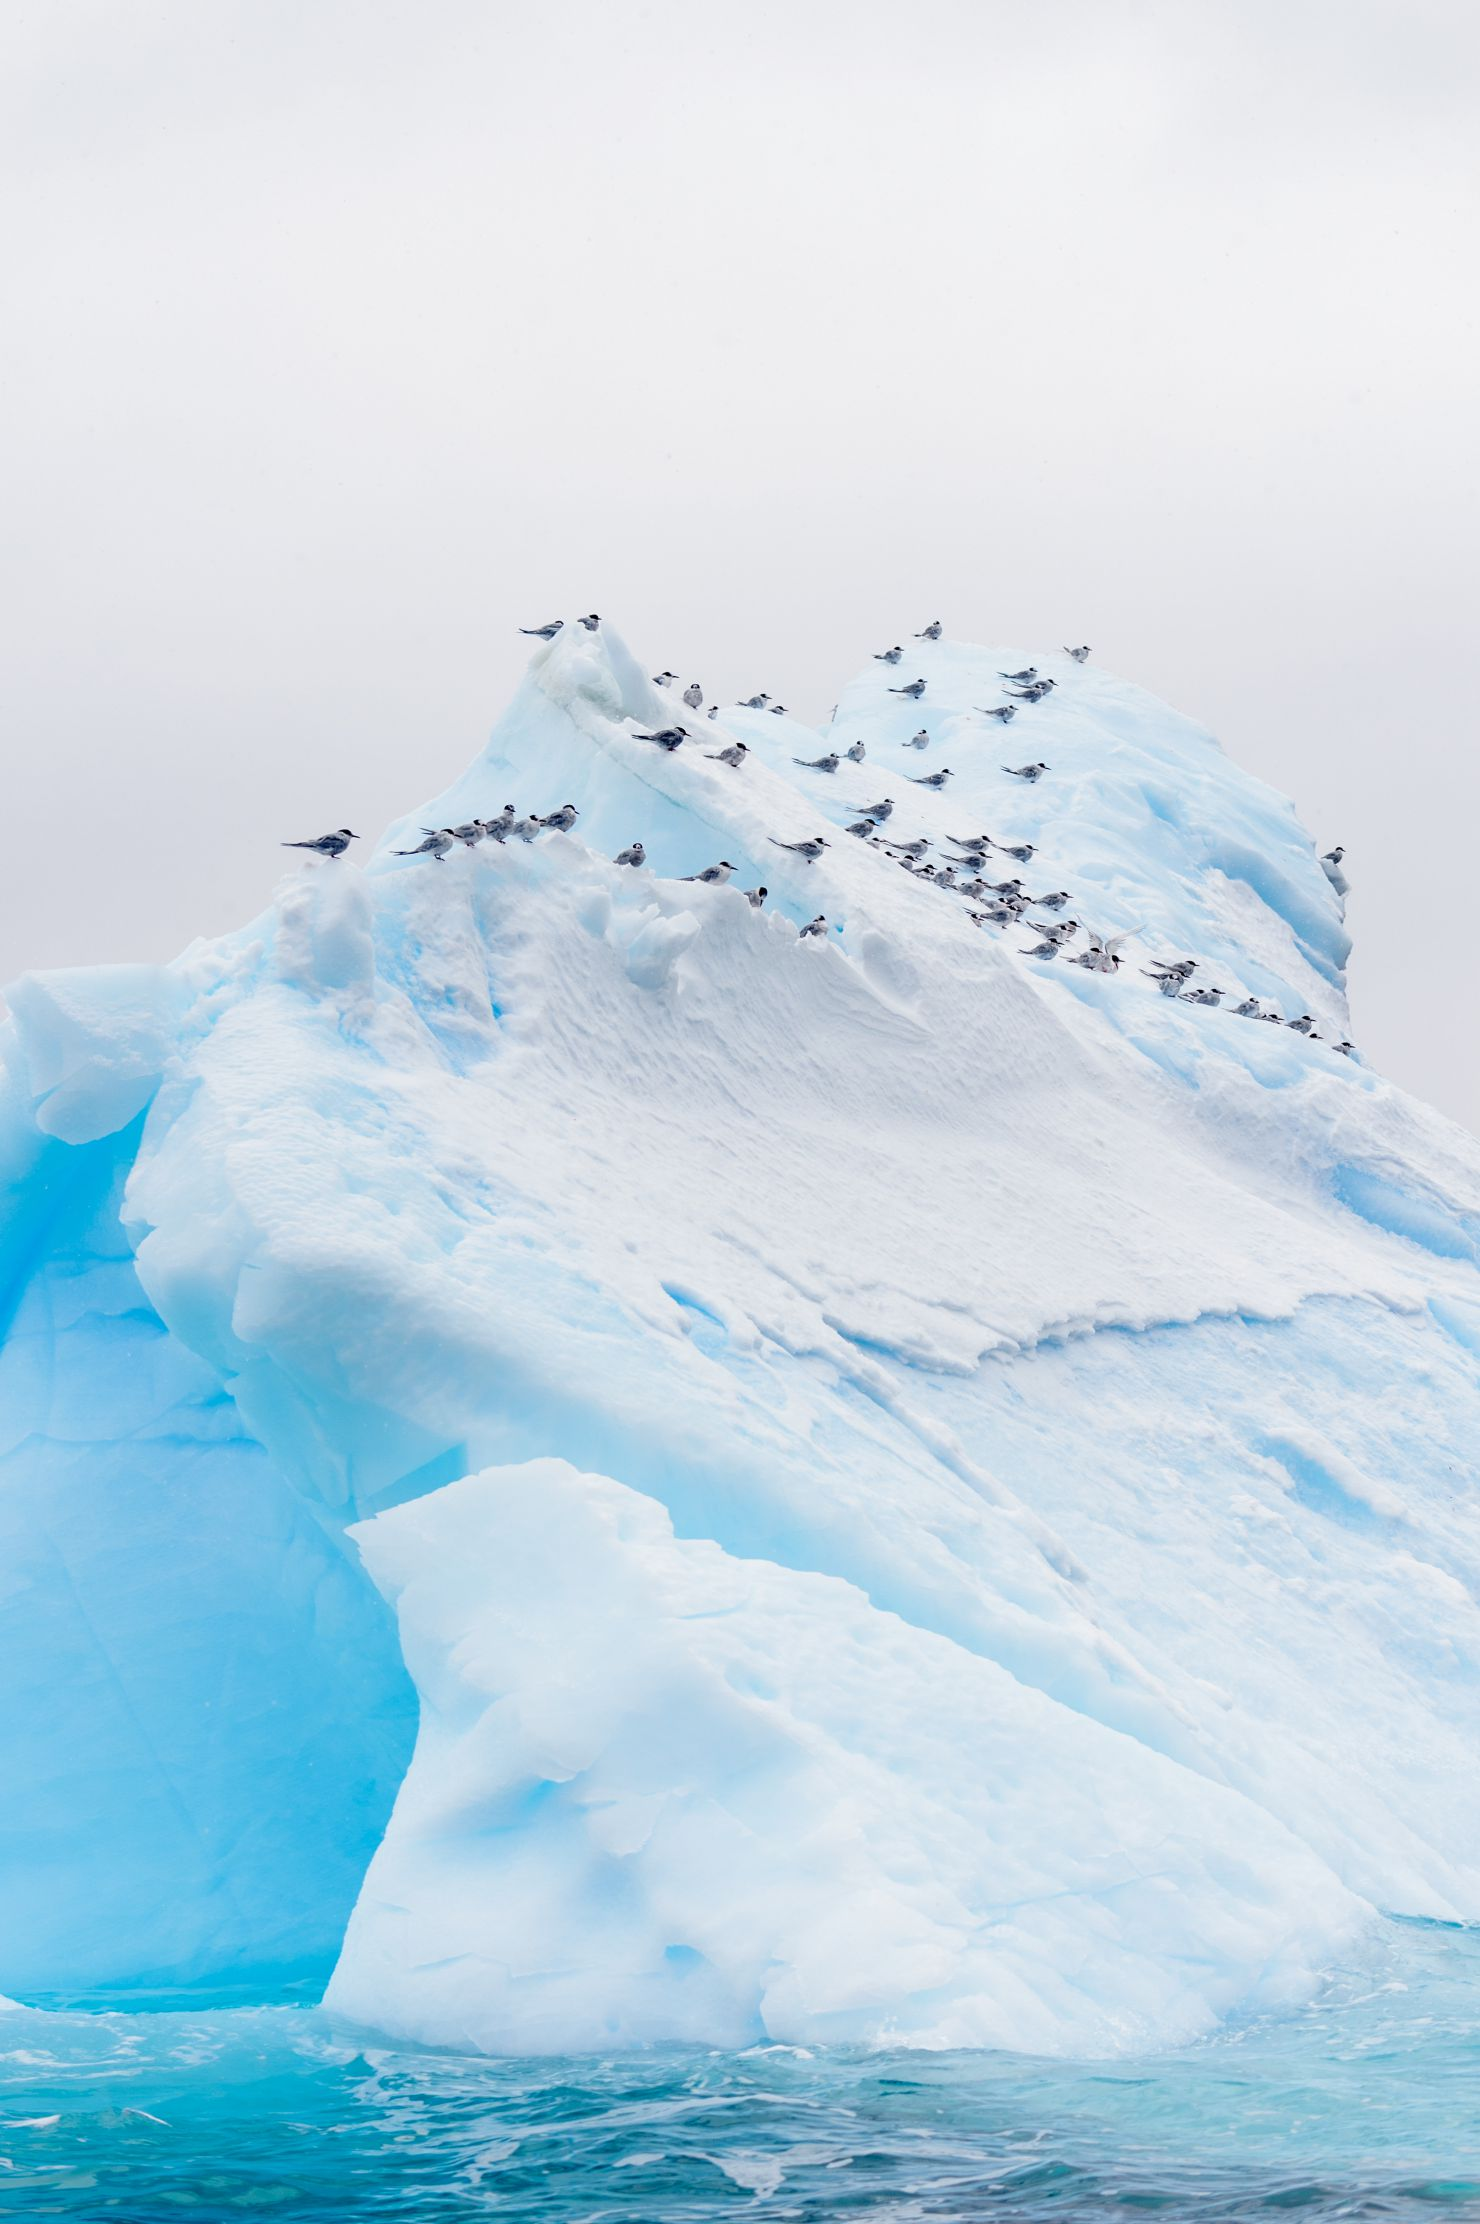 Antarctic terns on tabular ice